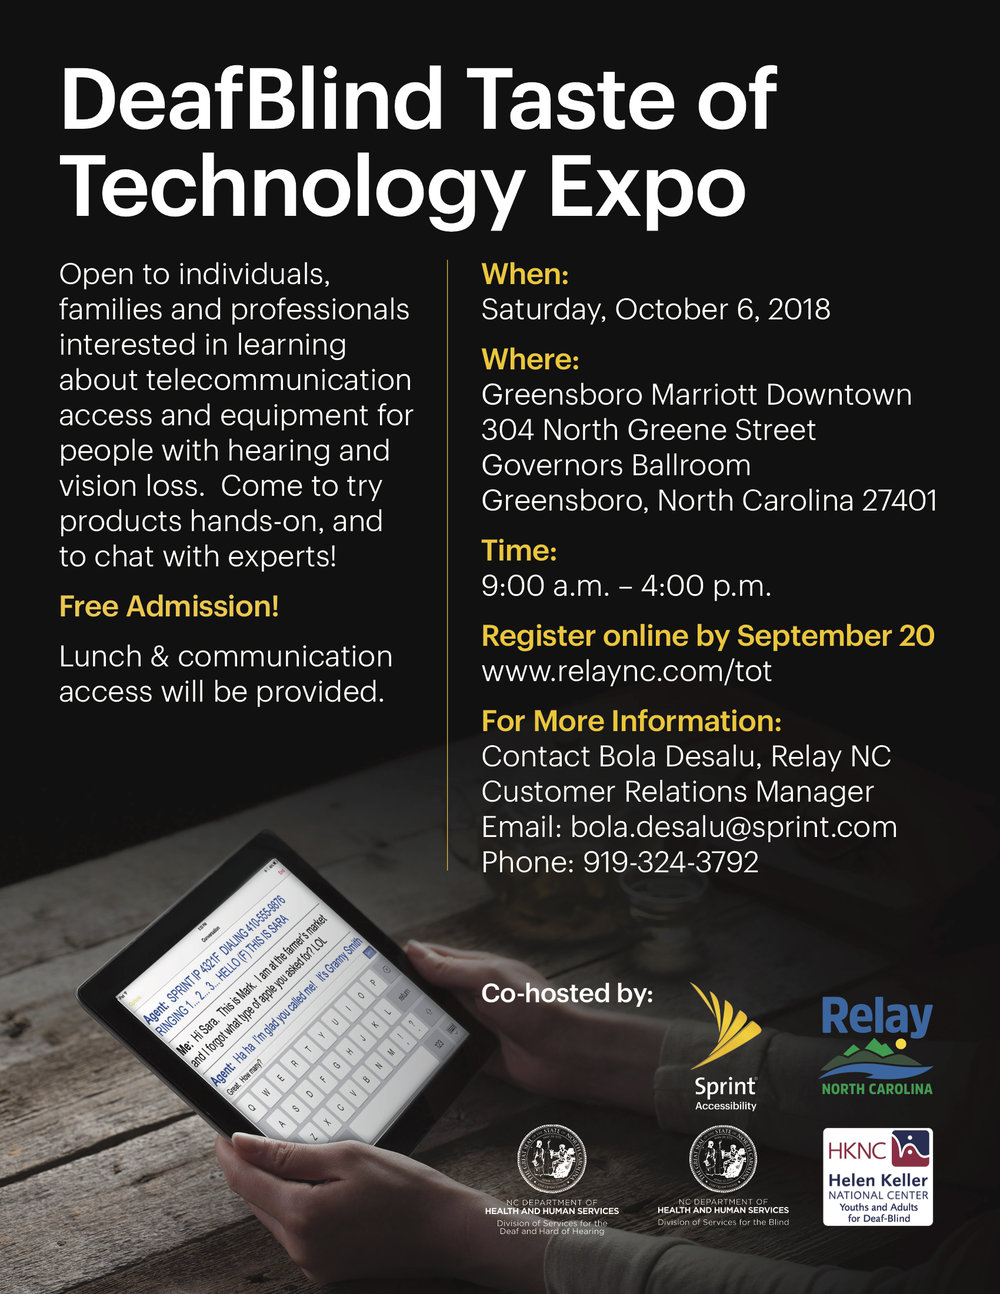 NC DeafBlind Taste of Technology Expo flyer.jpg